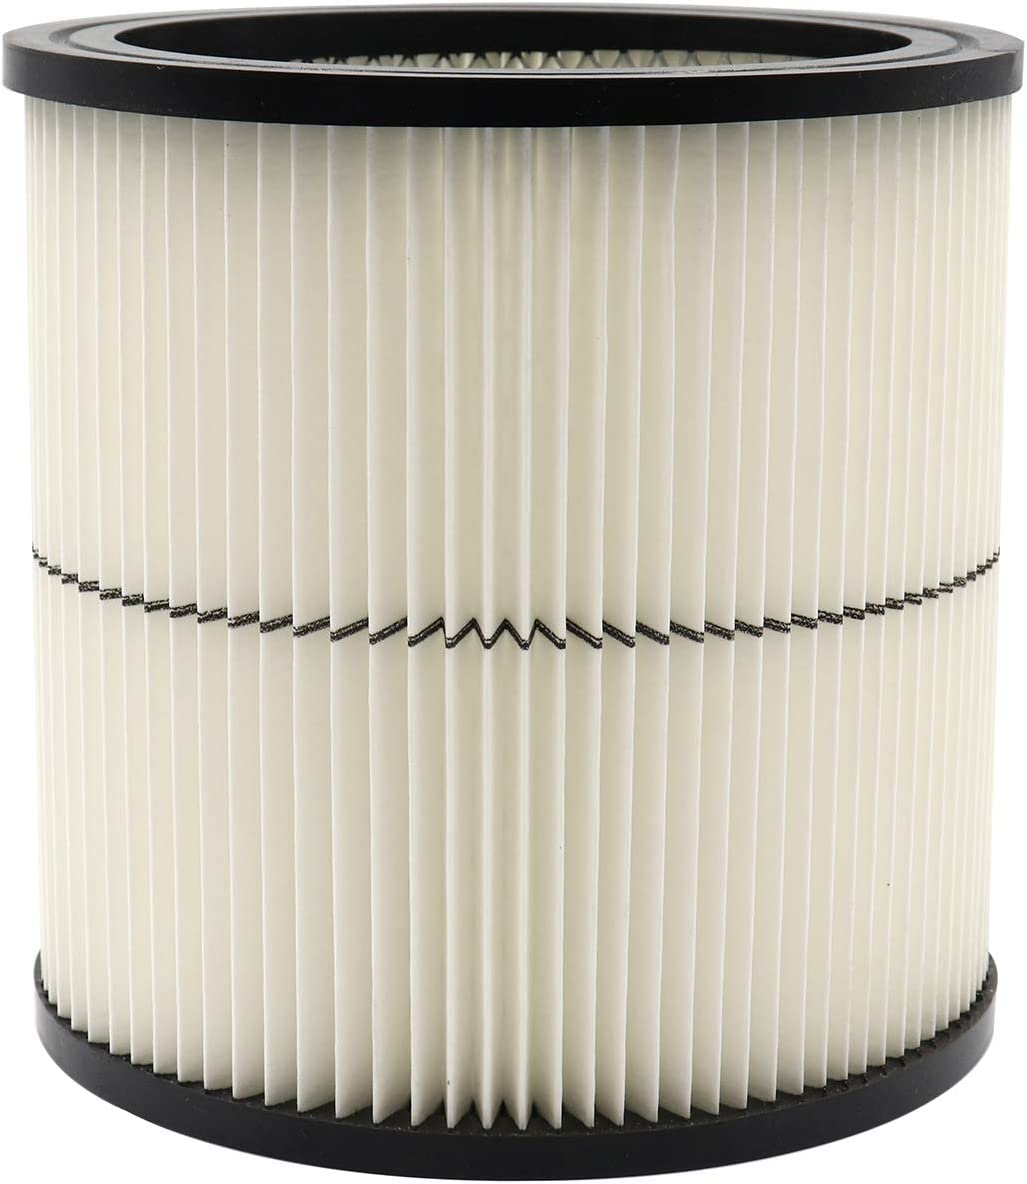 Craftsman 17884 Vacuum Filter For Shop Vac Replacement Part, Fit Select 6 Gallon & Large Vacs, 1 Pack